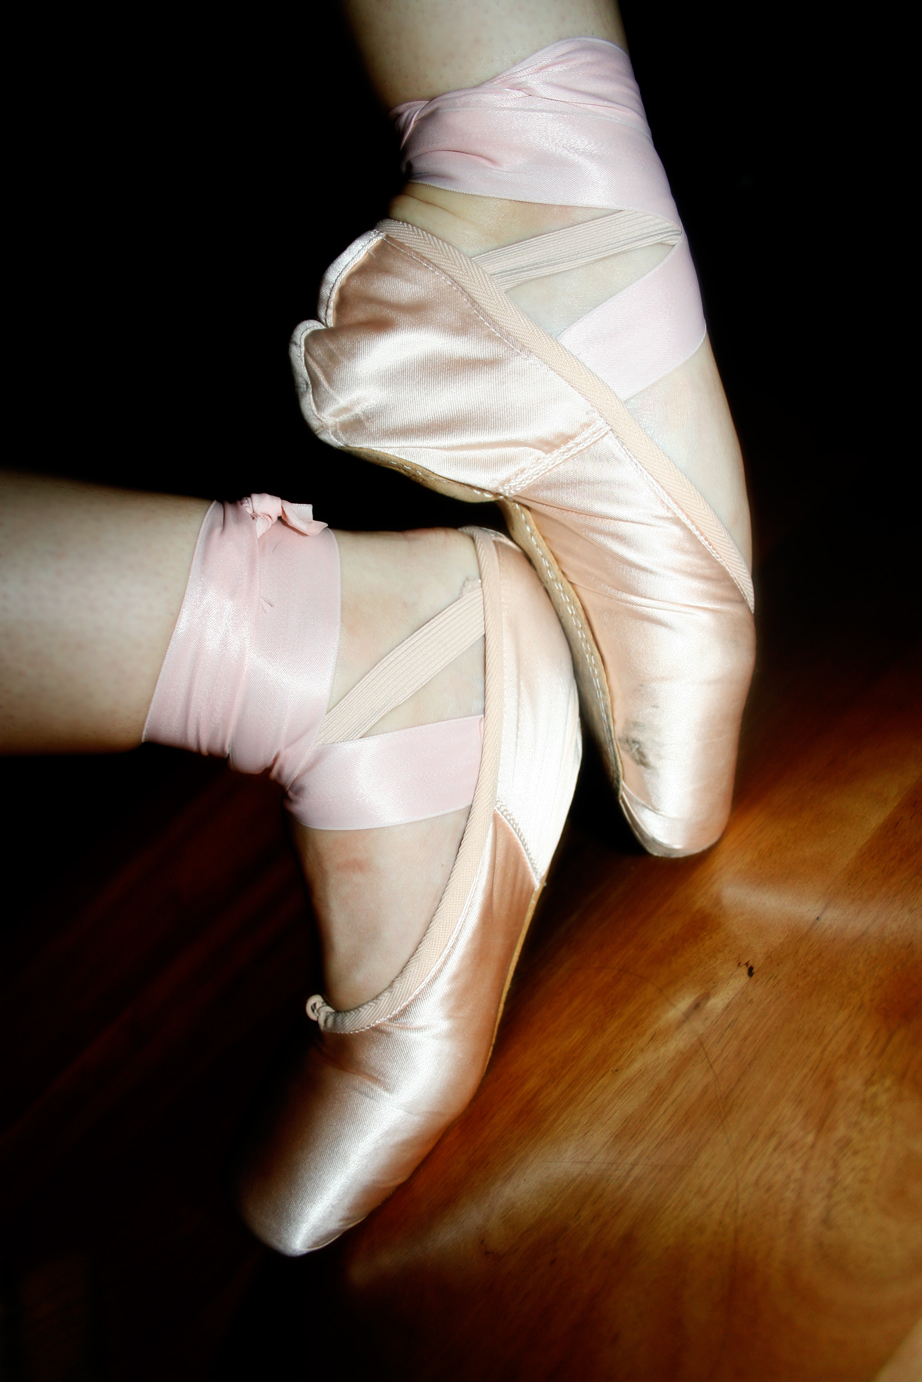 File:Ballet pointe shoes.jpg - Wikimedia Commons